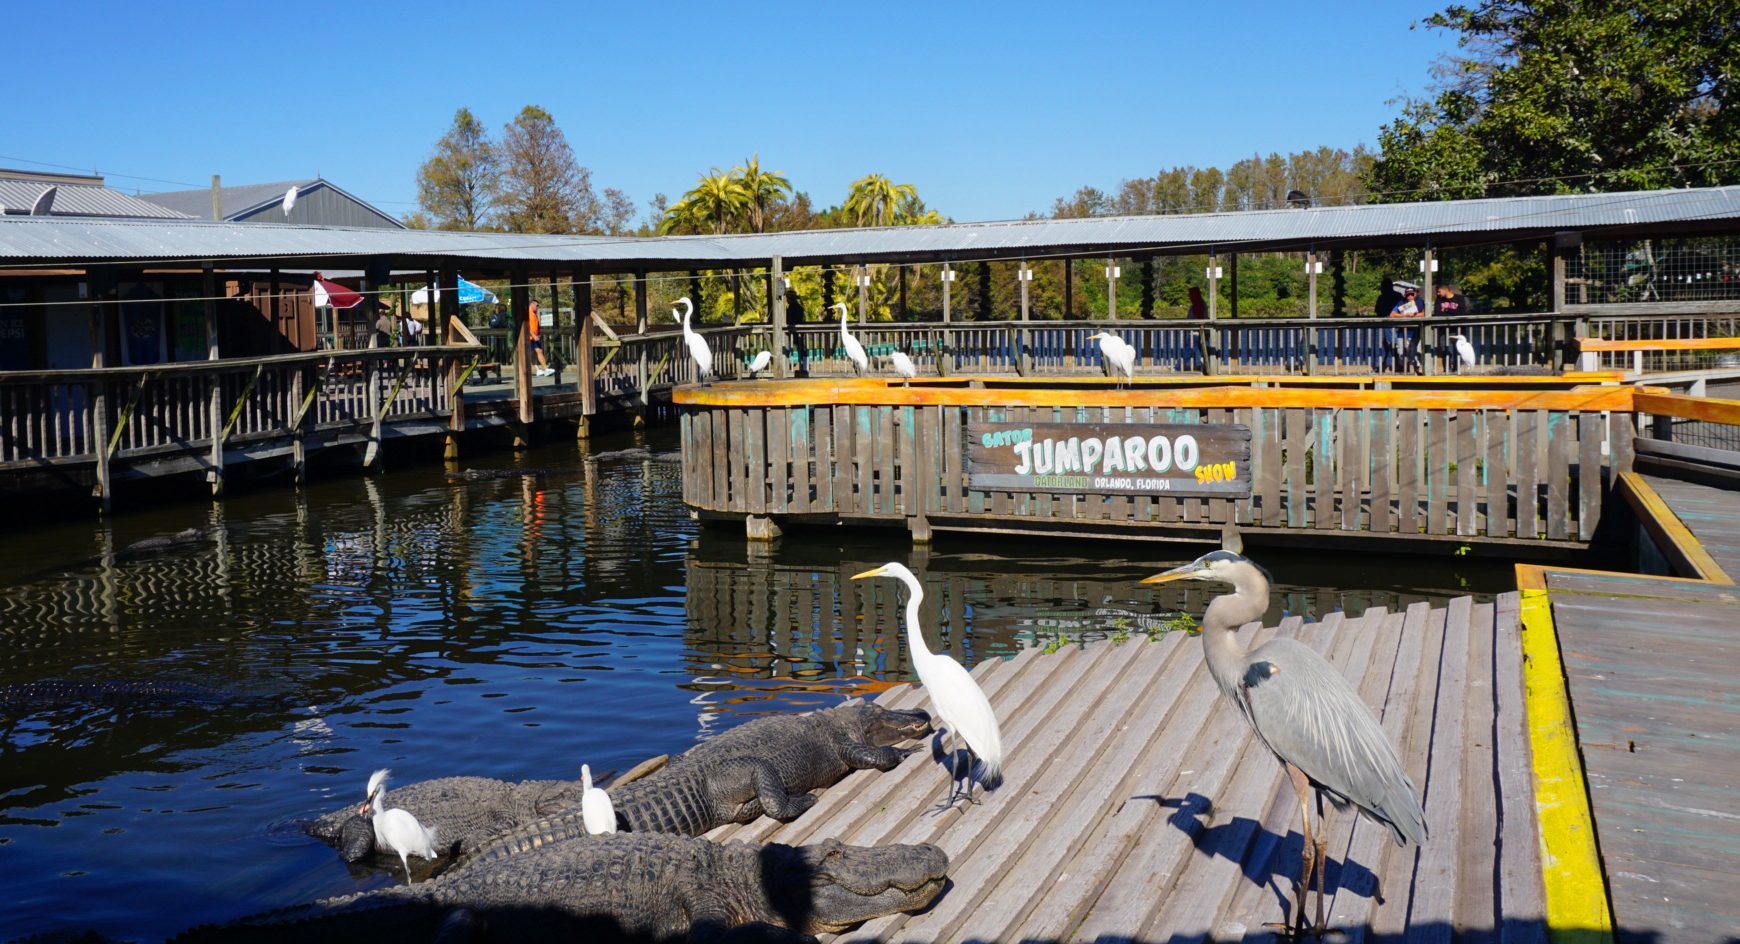 Gatorland Jumparoo Pond